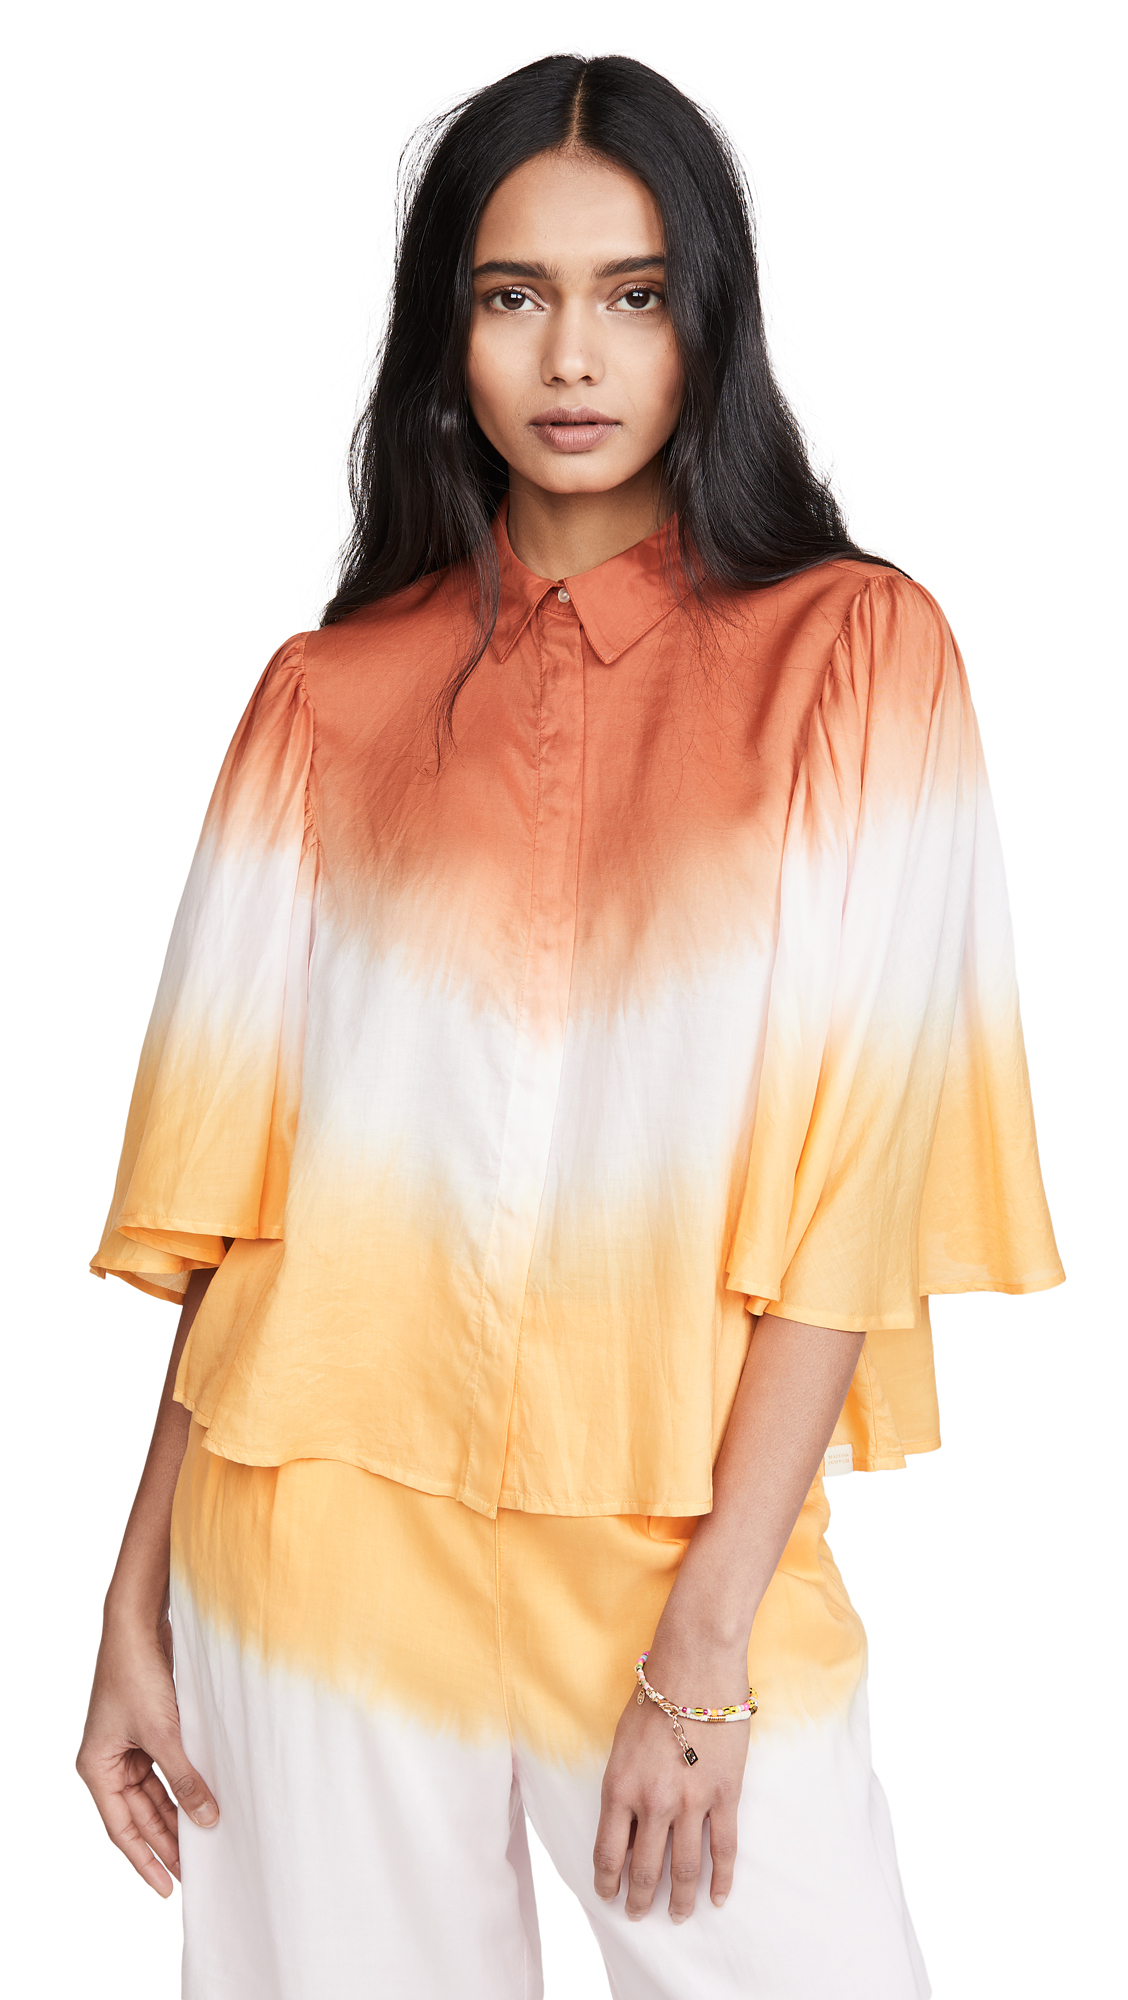 Scotch & Soda/Maison Scotch Ombre Top - 40% Off Sale